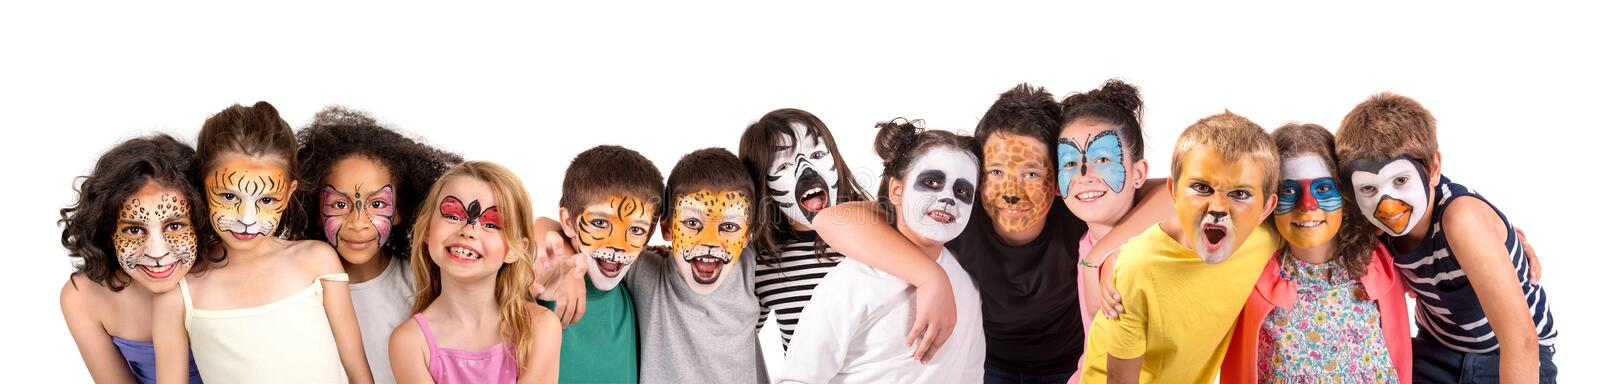 Kids with face-paint royalty free stock image